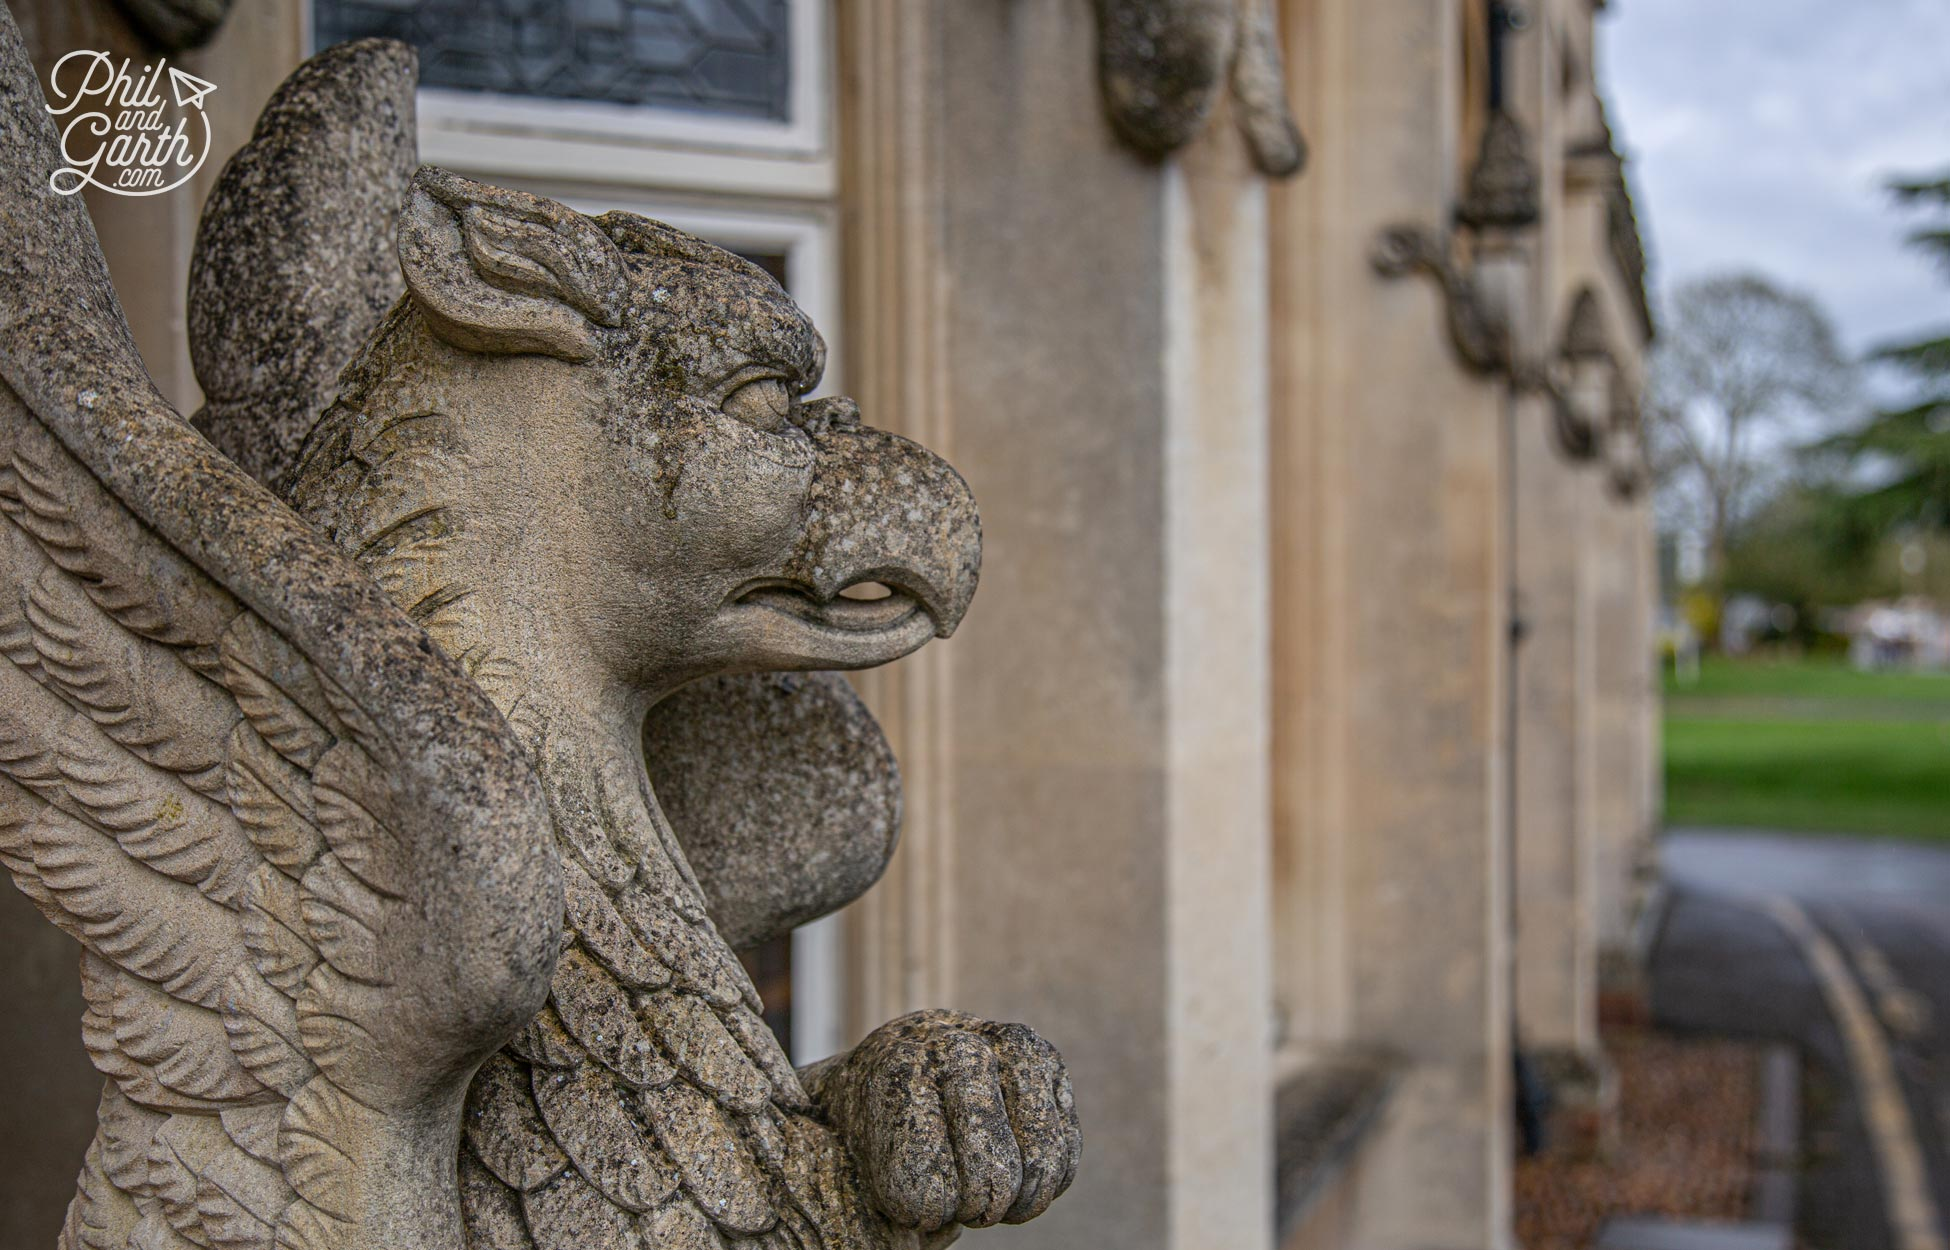 We loved these Griffin statues at the entrance